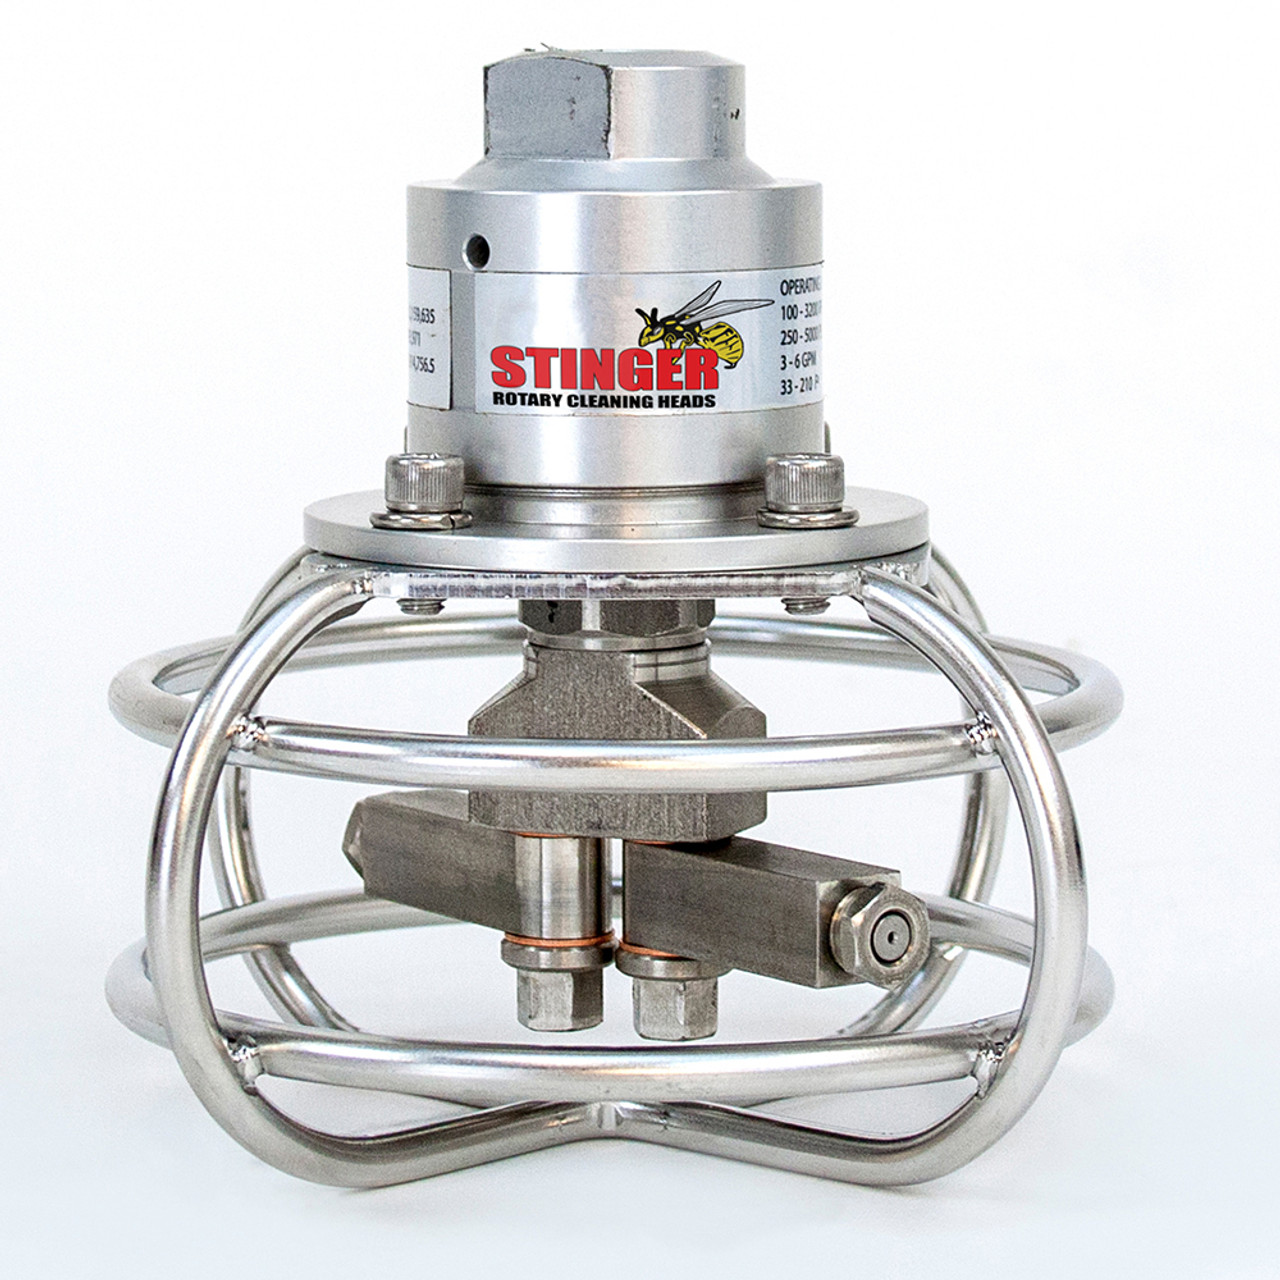 Stinger Rotary Cleaning Heads